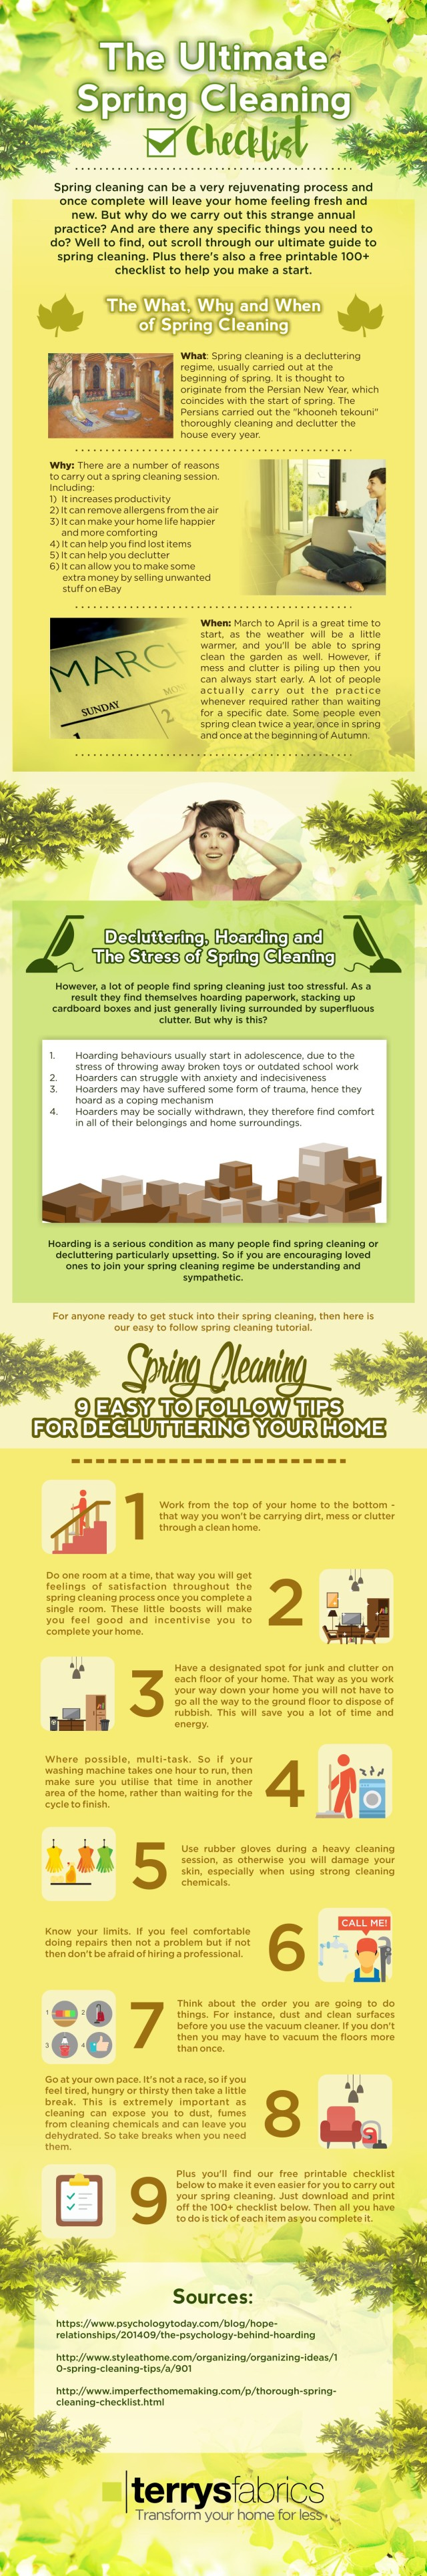 Ultimate-Spring-Cleaning-Checklist-Infographic